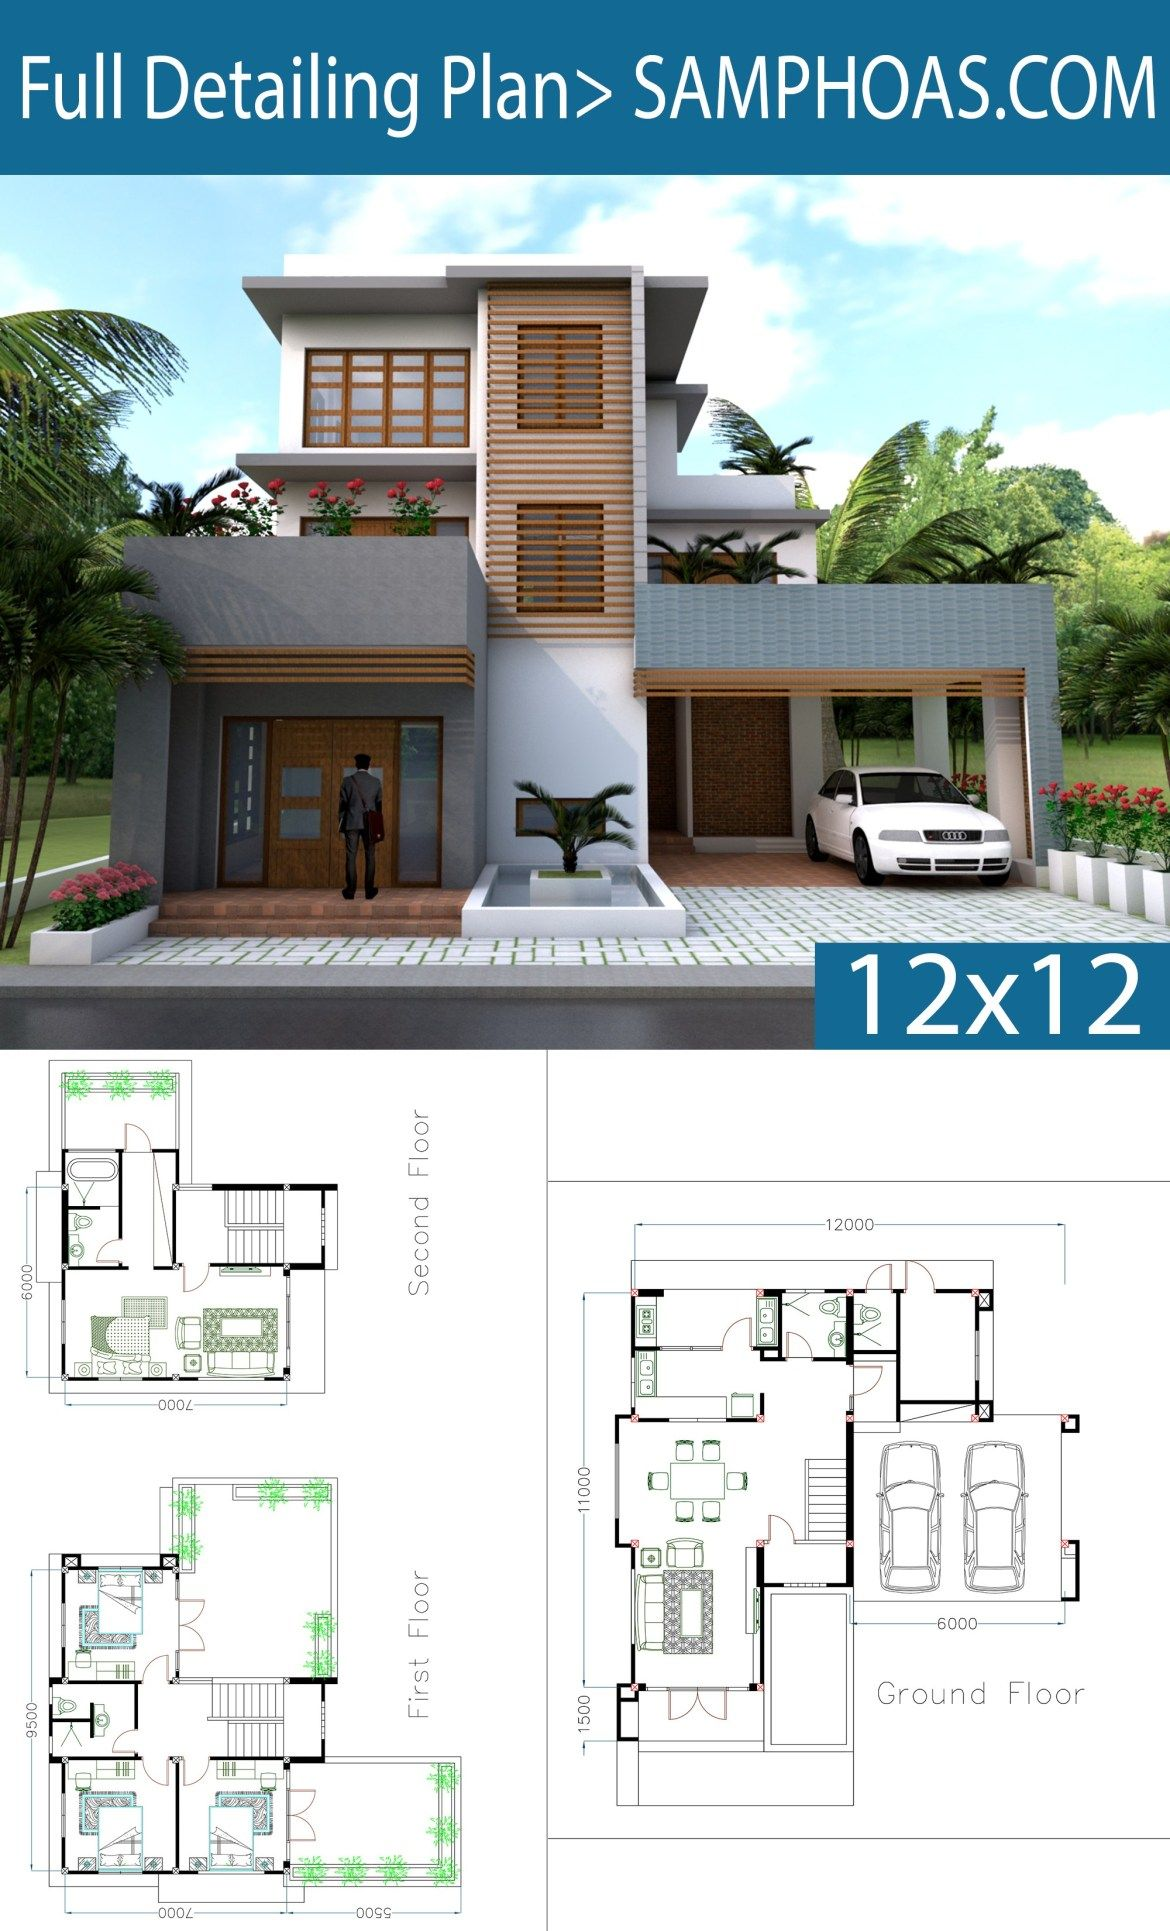 Sketchup Modern 4 Bedrooms Home Plan 11x12m Samphoas Plansearch House Plans House Plans Mansion Contemporary House Plans